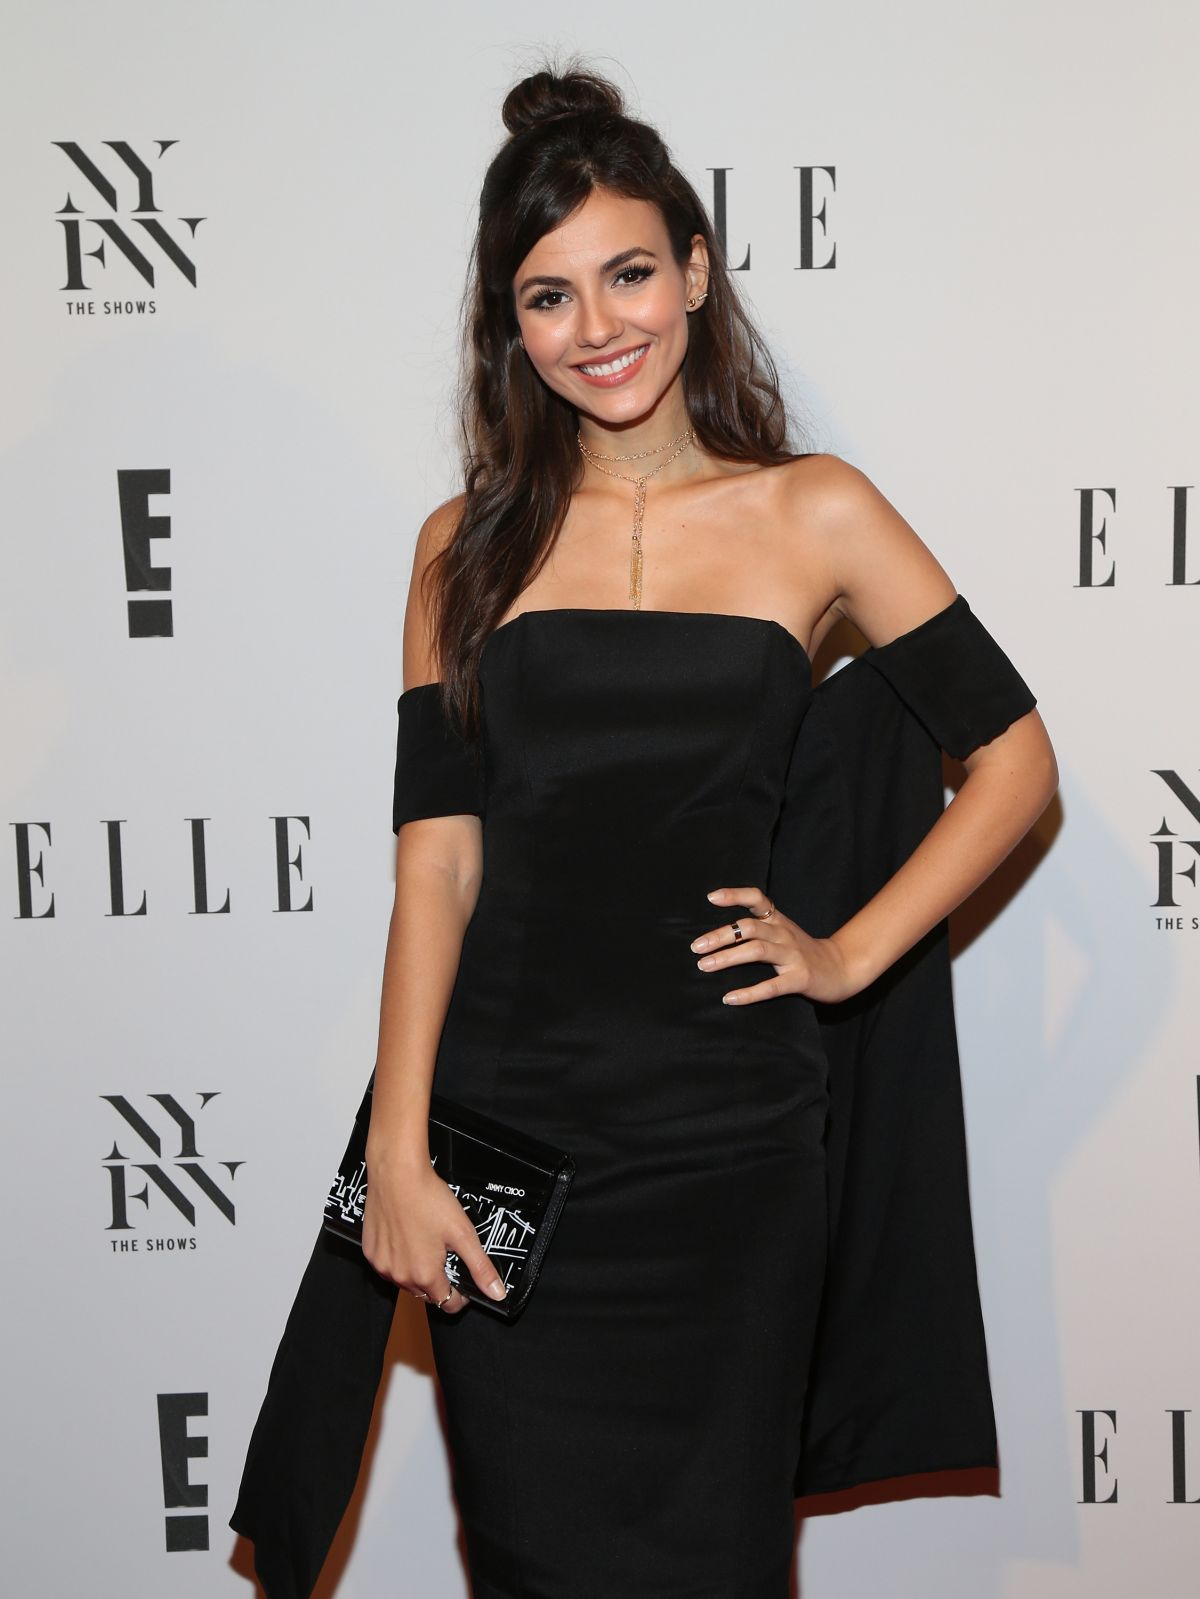 VICTORIA JUSTICE at E! New York Fashion Week Kick-off in New York 09/07/2016